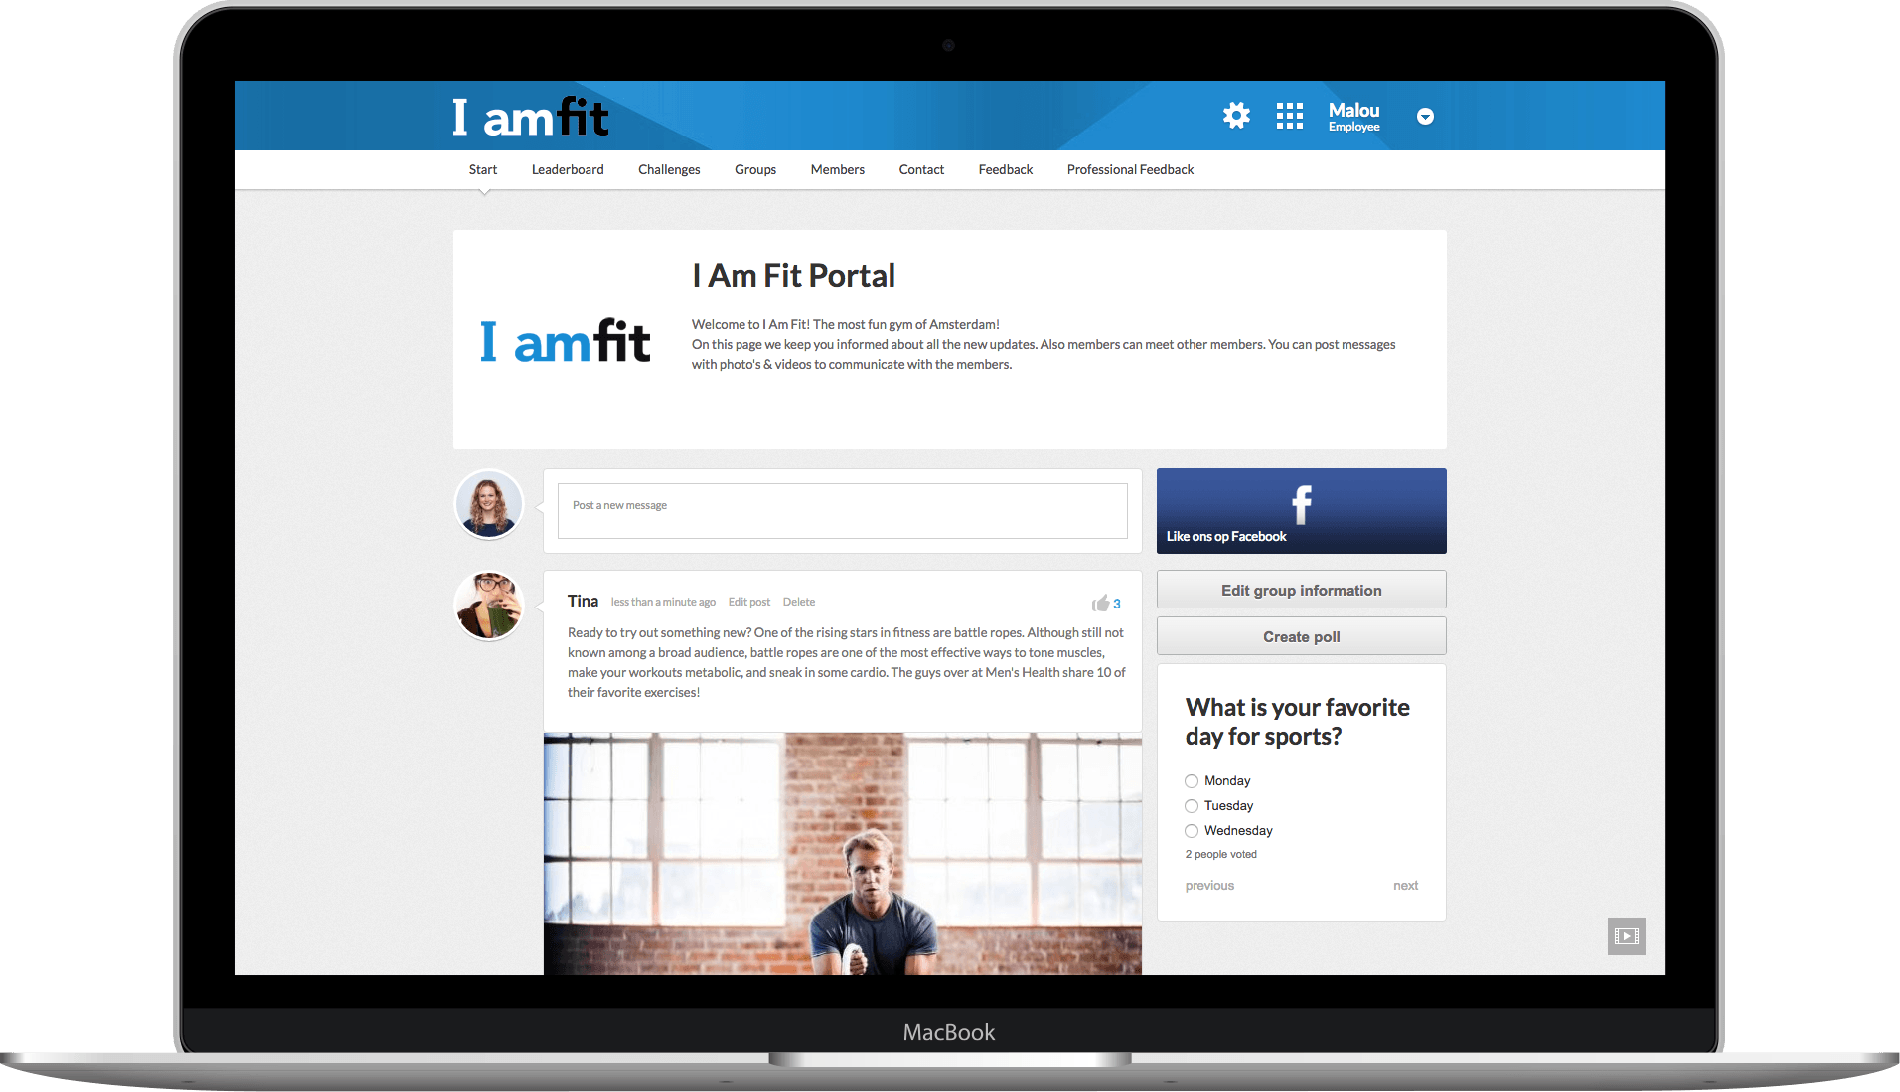 iamfit_portal_macbook